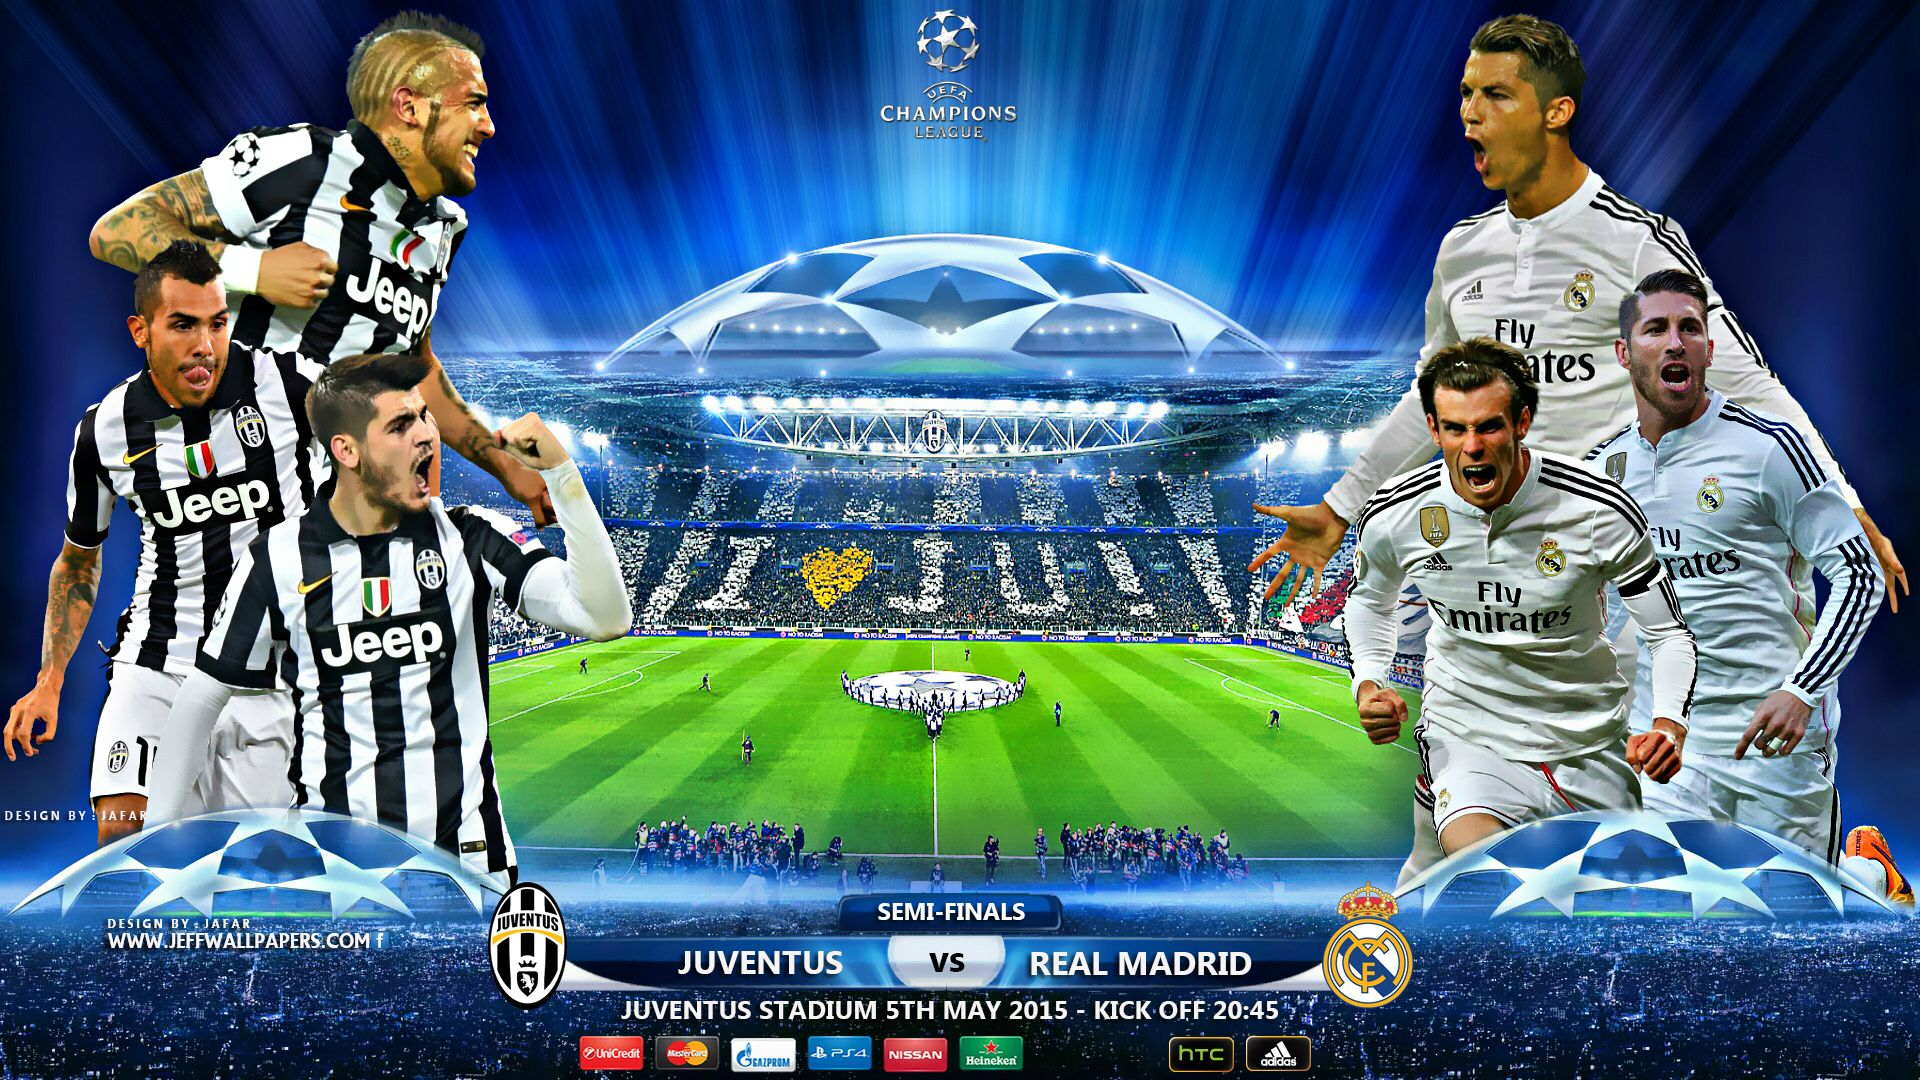 juventus vs real madrid uefa champions league semifinal to get updated with uefa then